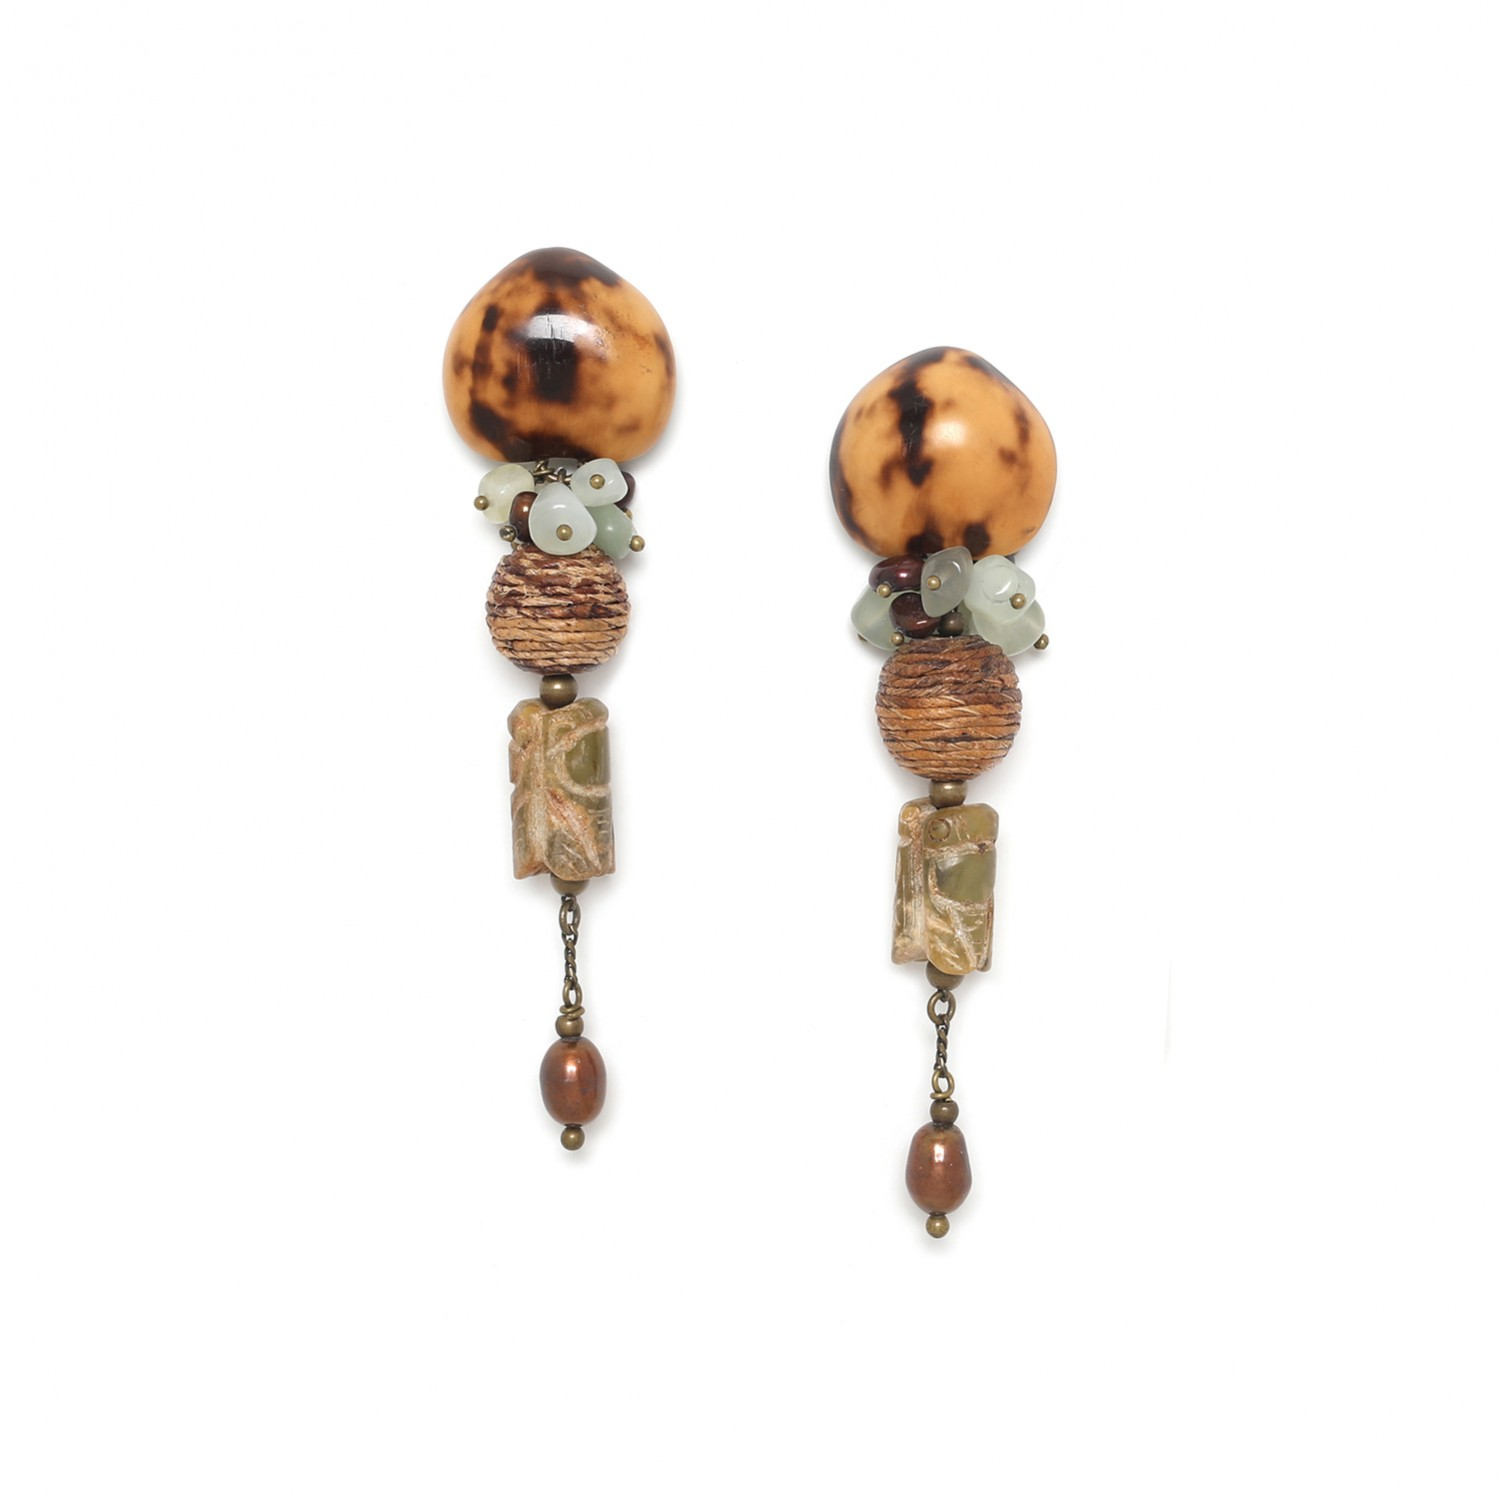 BURUNDI ciicada earrings